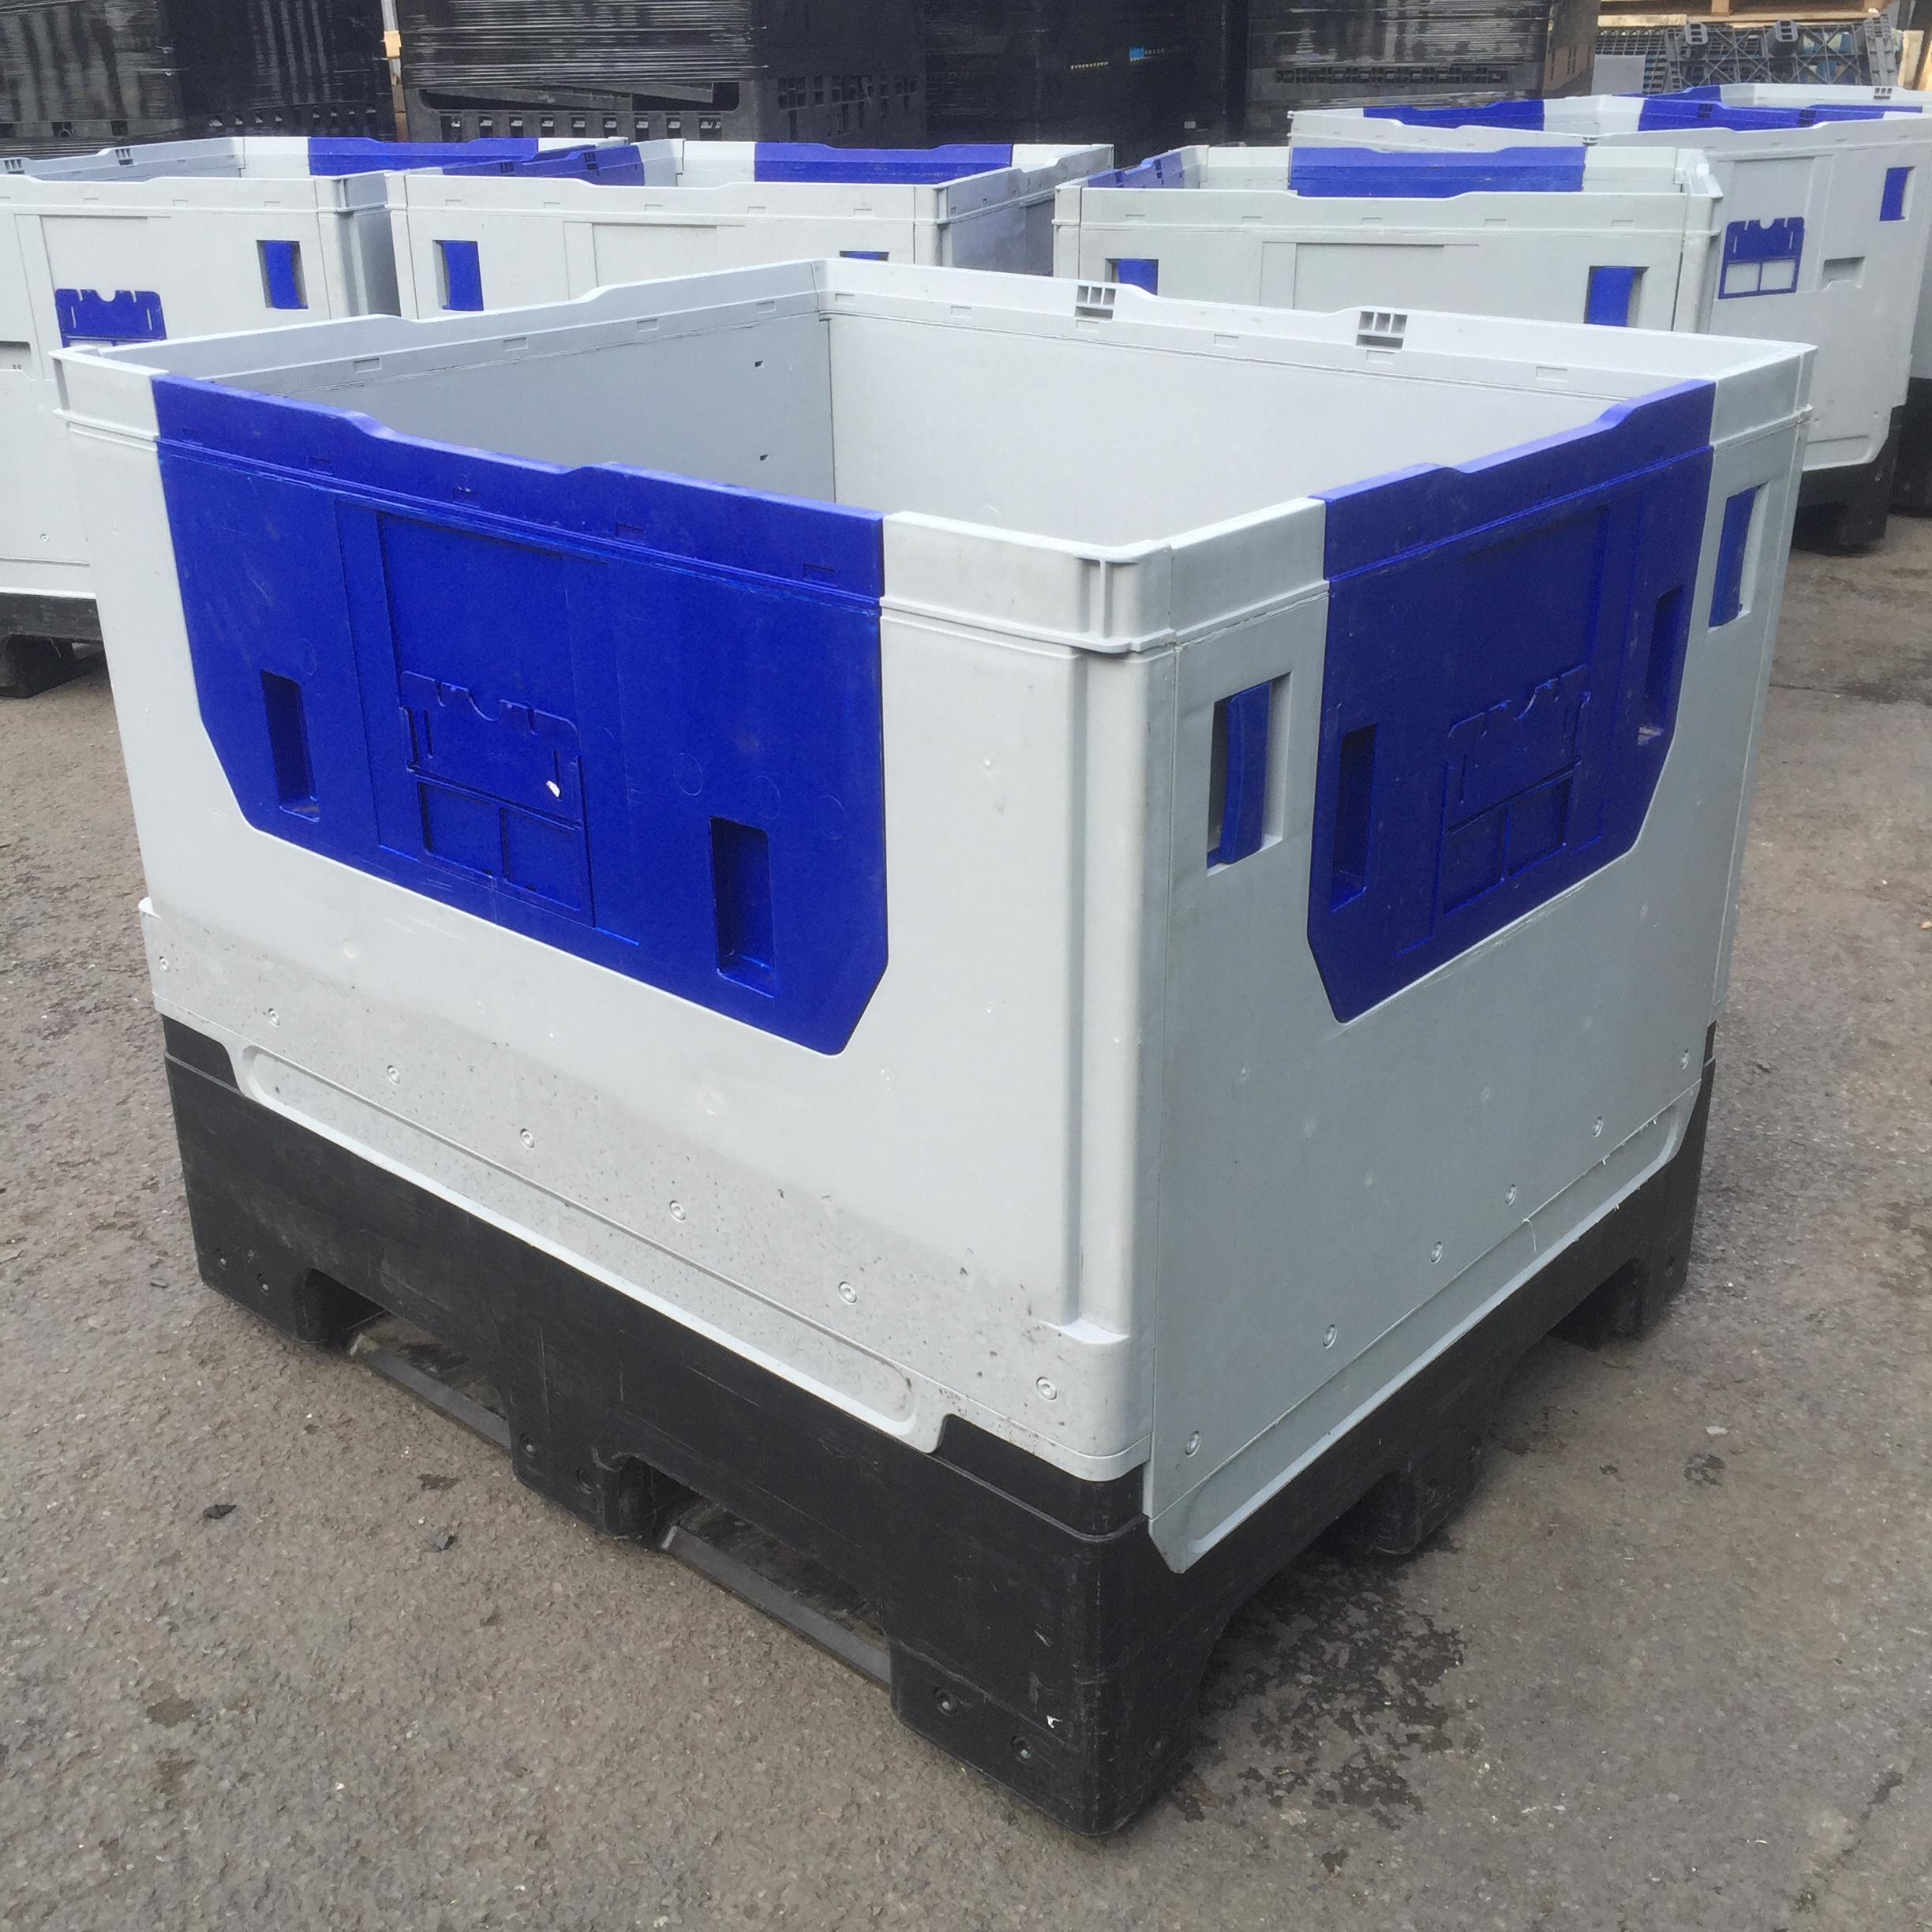 KF975 Reconditioned Bulk Containers - Plastic Mouldings Northern